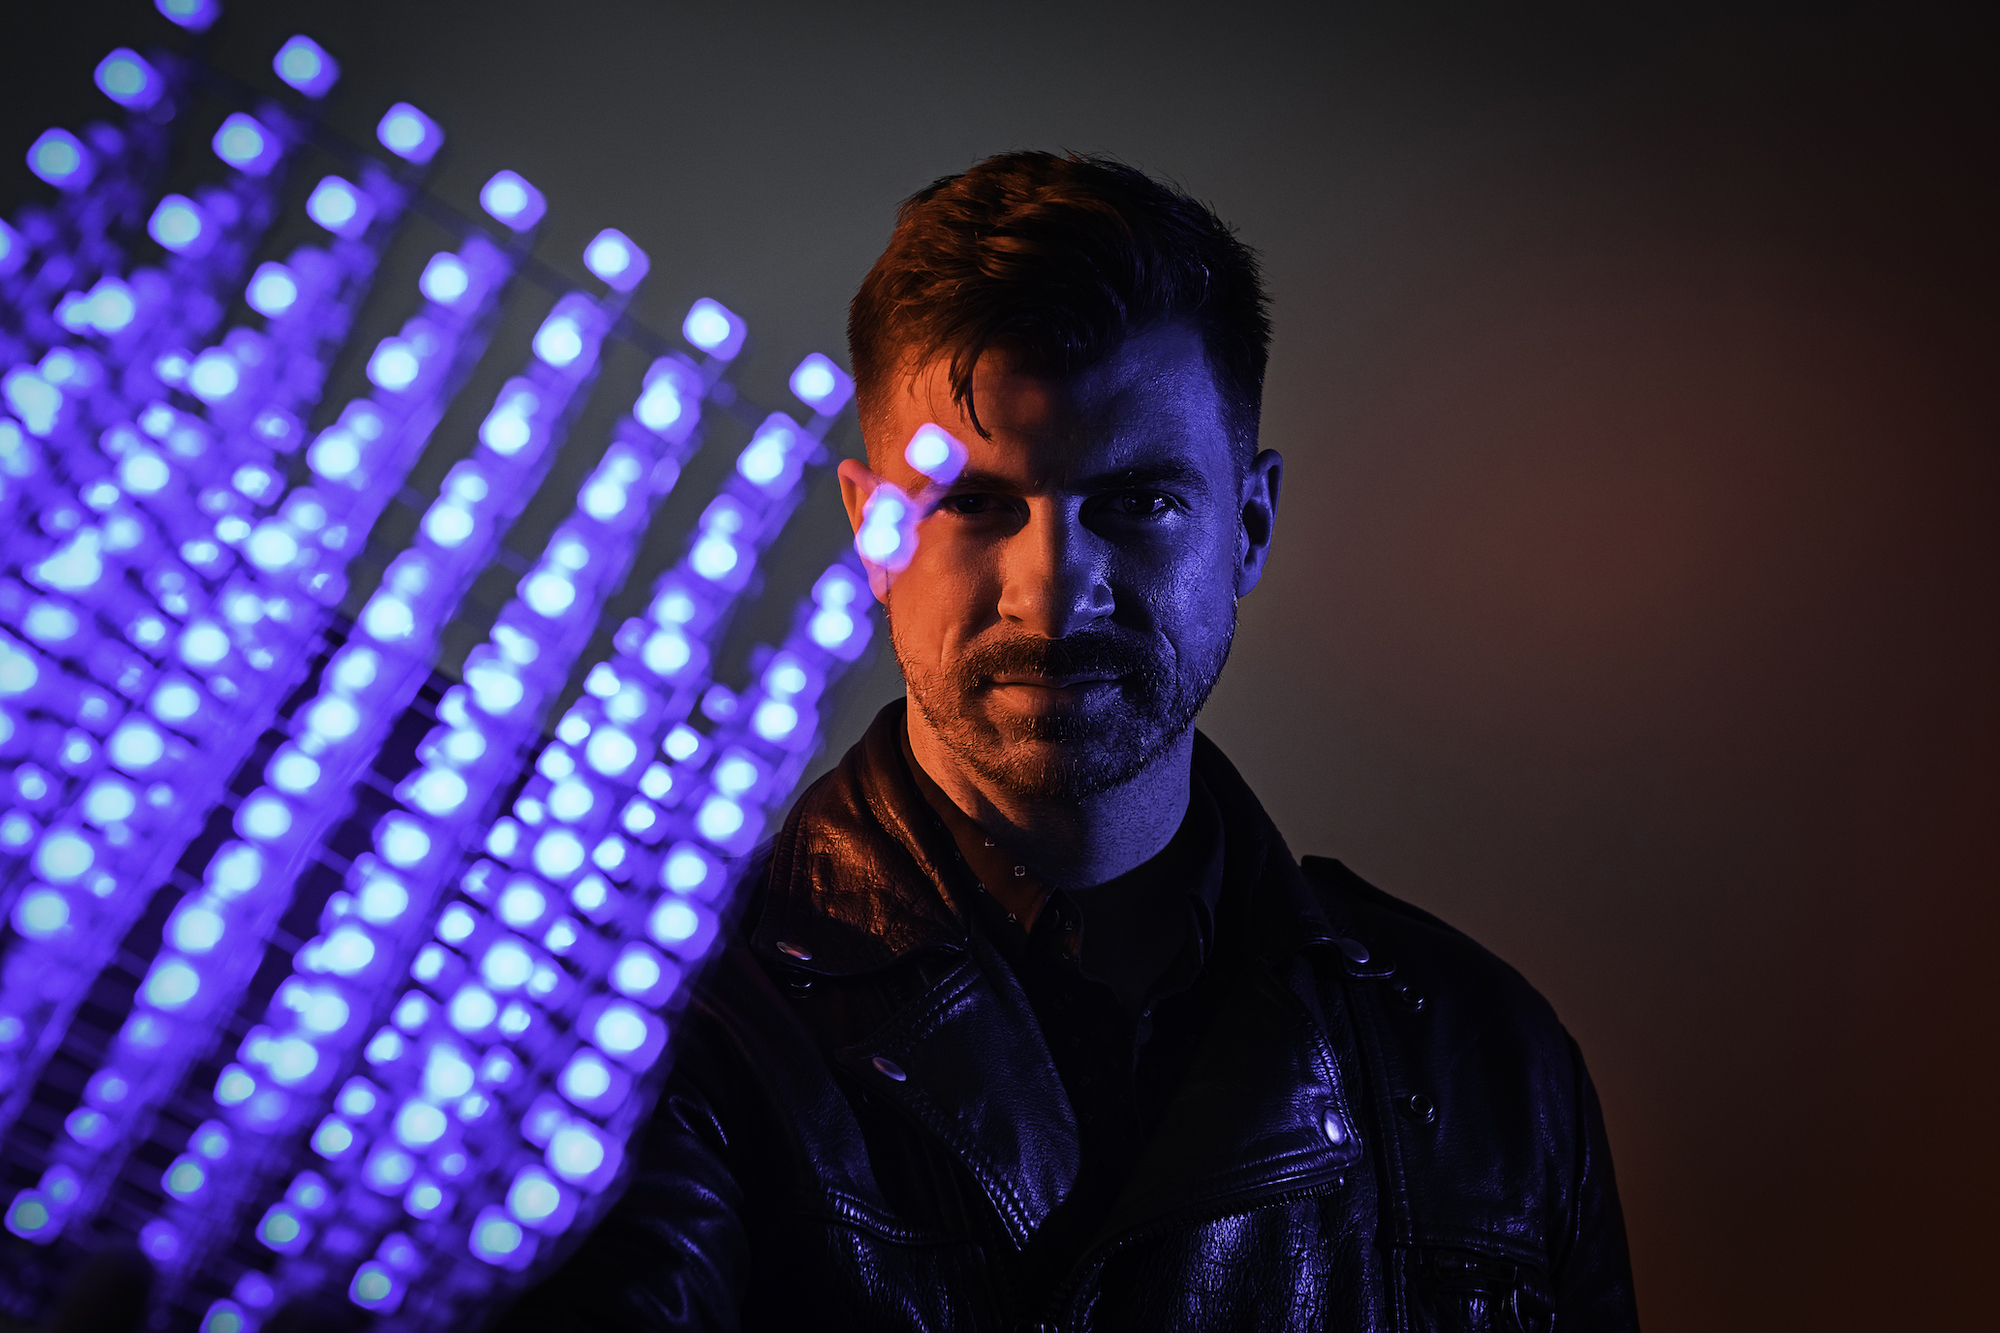 A man wearing a leather jacket is lit by the blue LED light cube he holds in his hand.